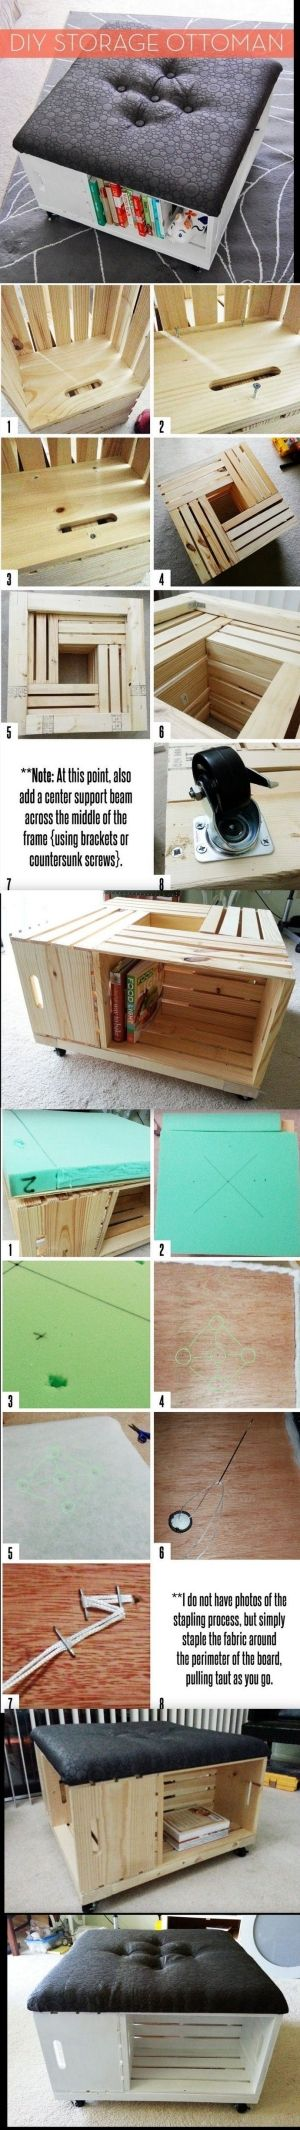 DIY Storage Ottoman with Wheels.